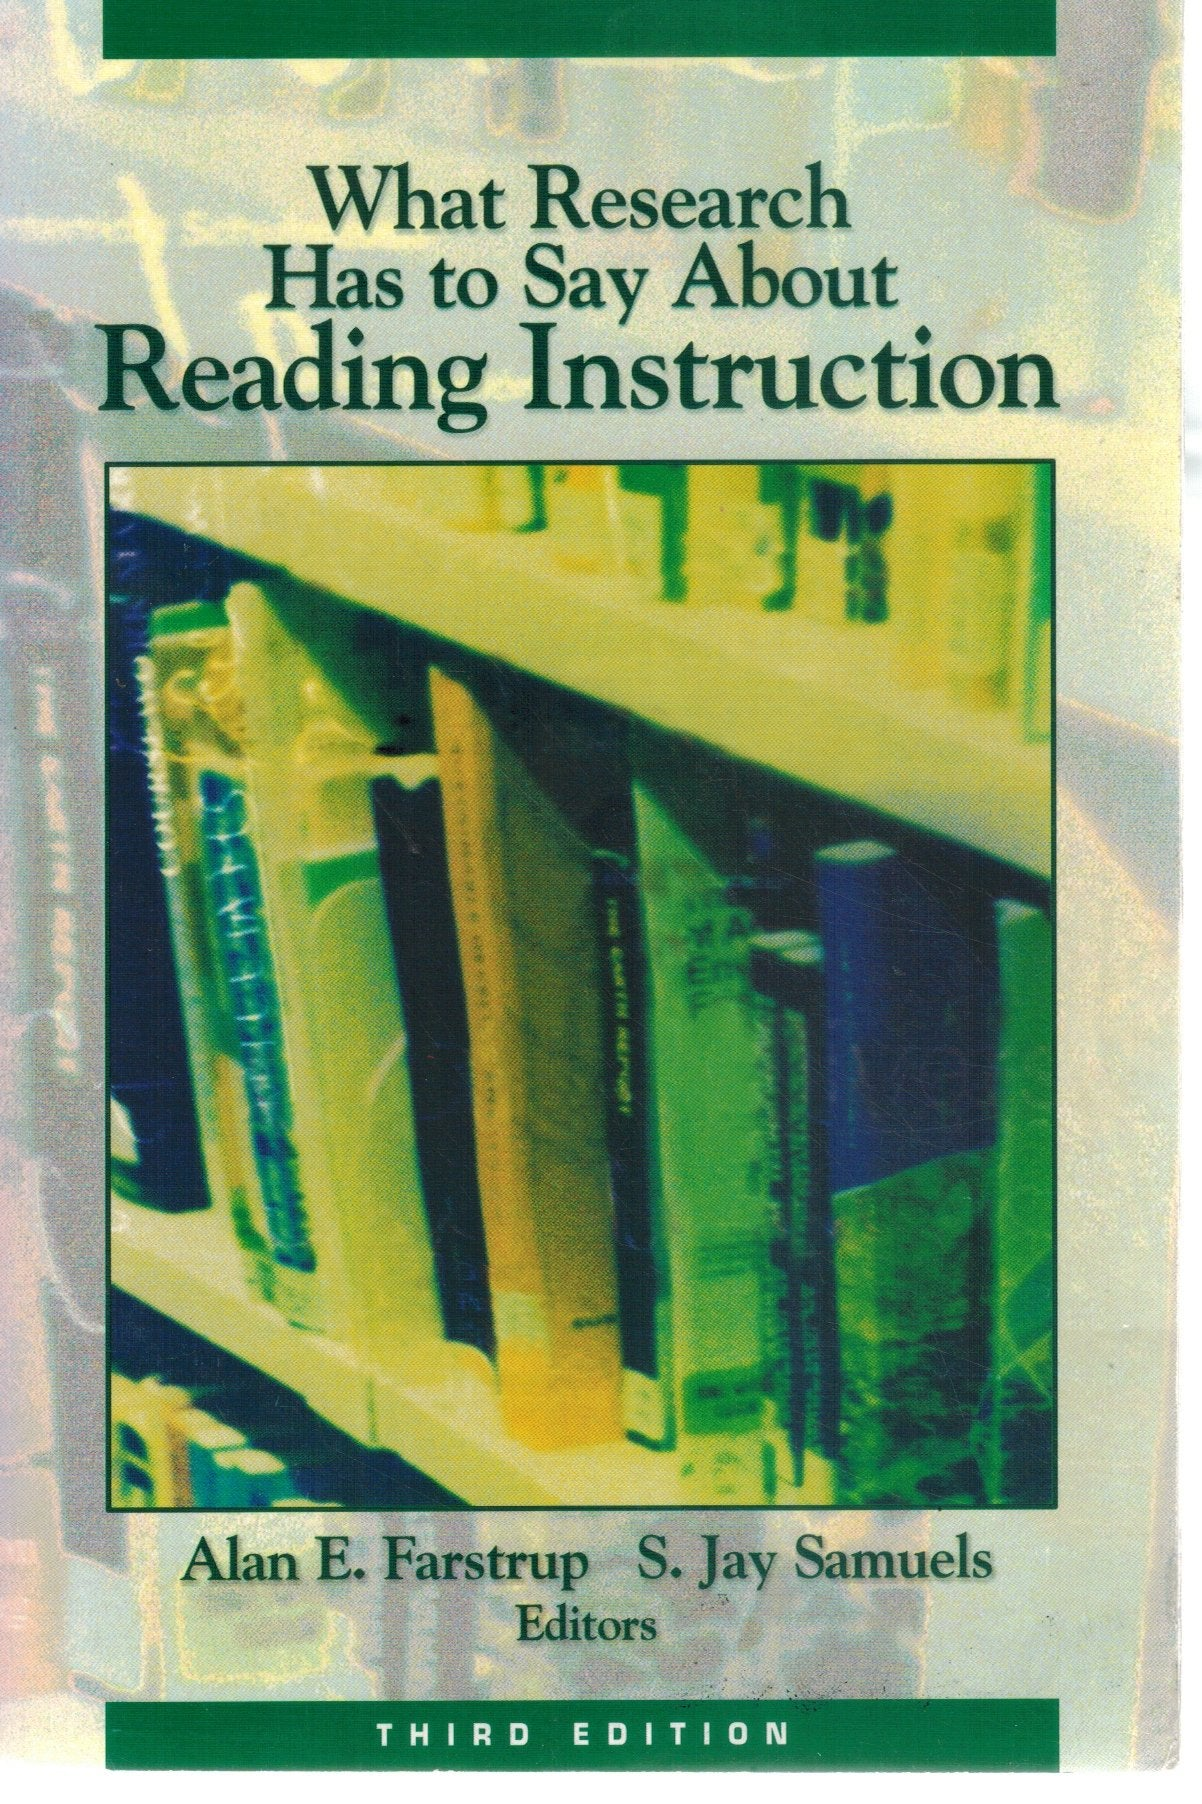 WHAT RESEARCH HAS TO SAY ABOUT READING INSTRUCTION  by Farstrup, Alan E. & S. Jay Samuels